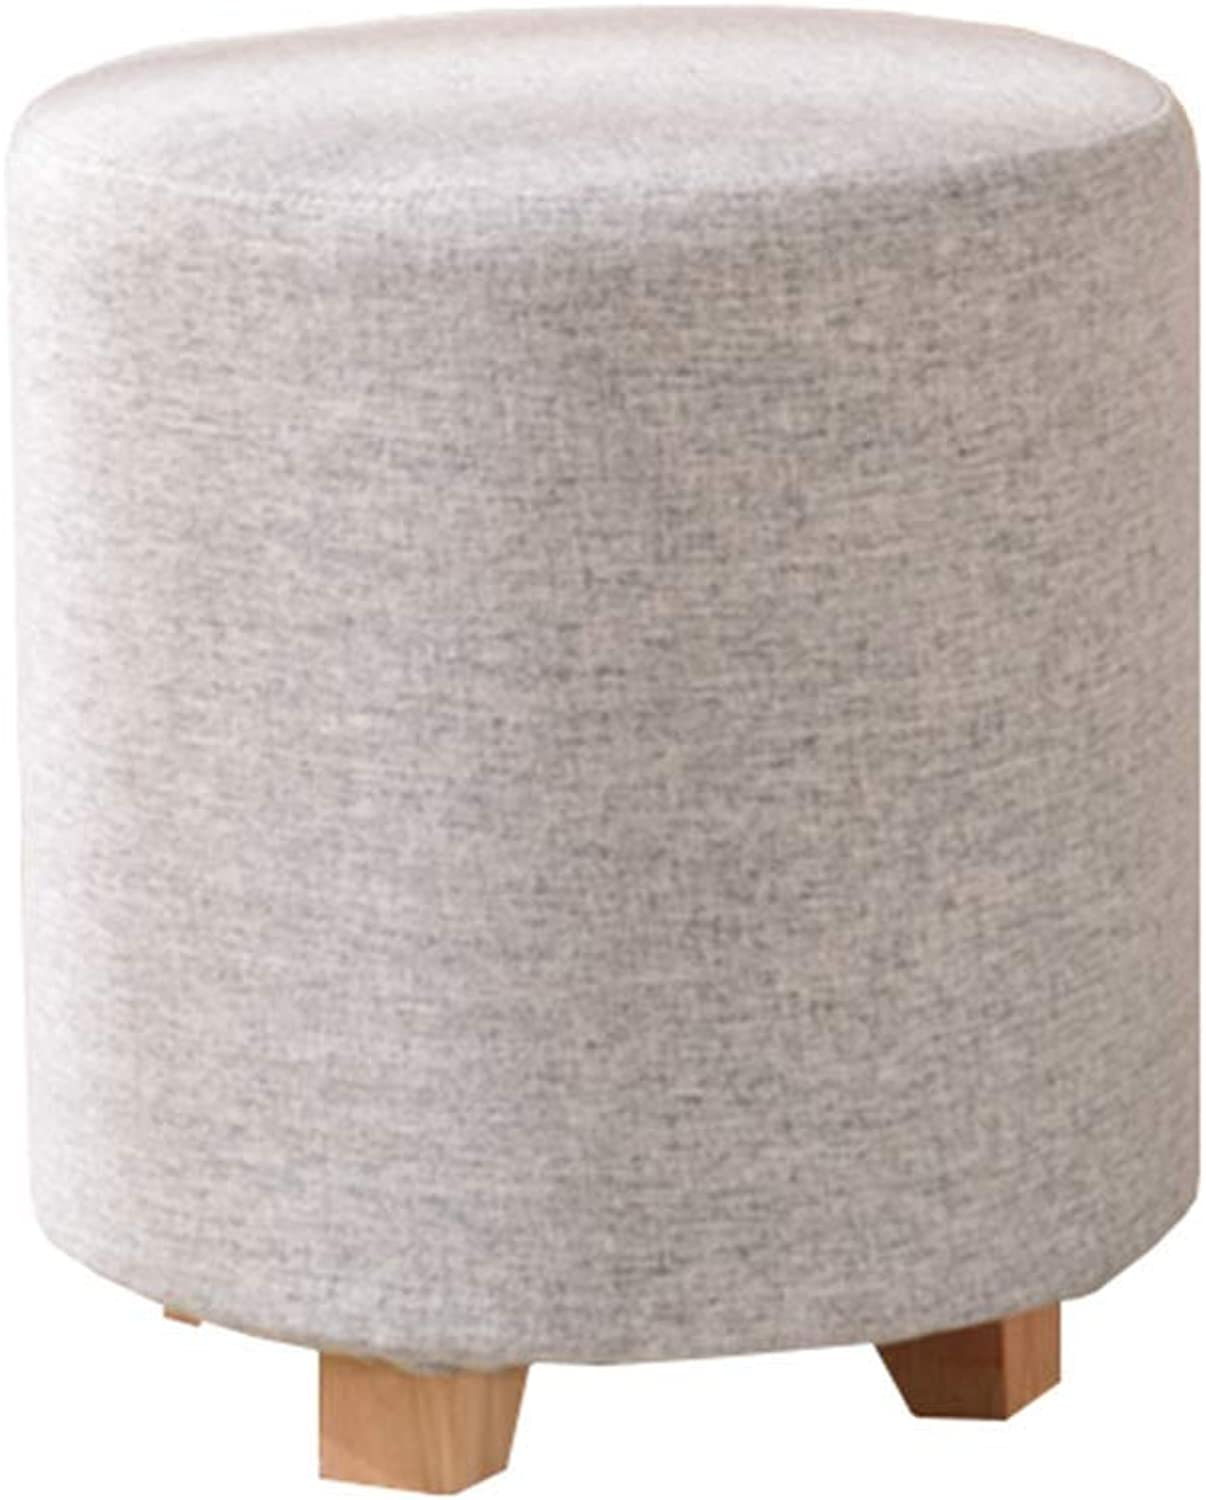 Footstool Low Stool Round Stool, Living Room Bedroom Multifunctional Storage Footstool (color   F, Size   35  45CM)